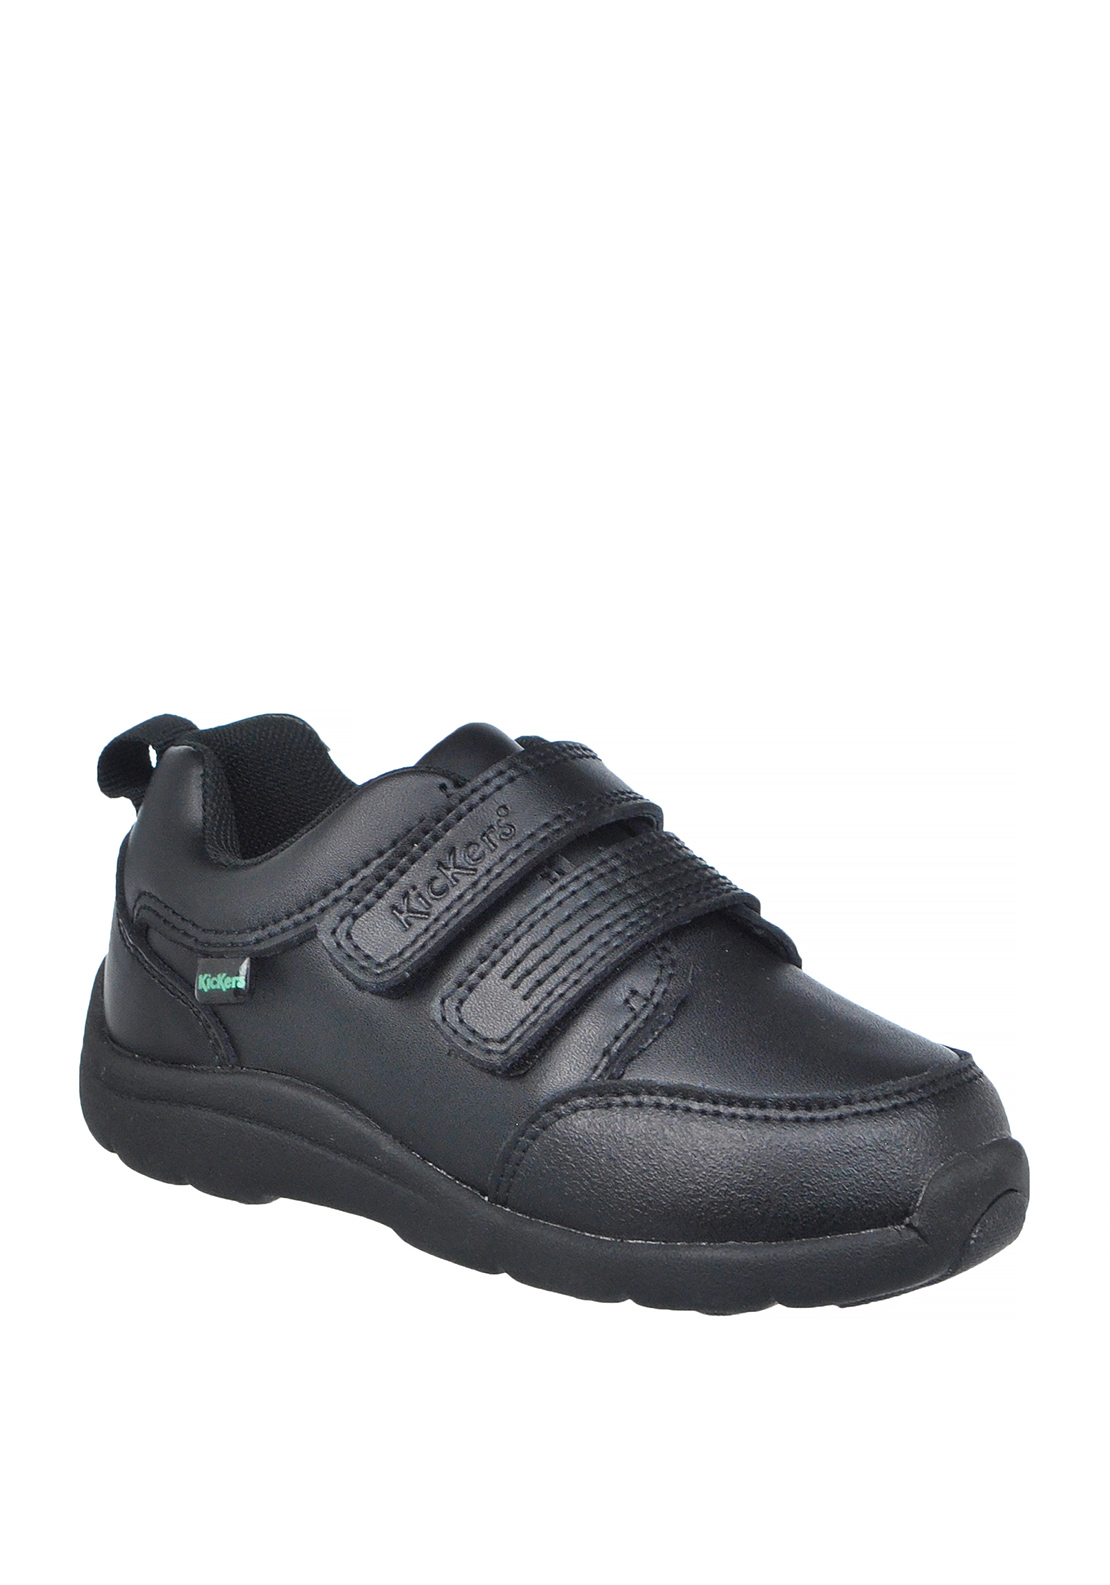 Kickers Boys Velcro Strap Leather Coated Shoe, Black